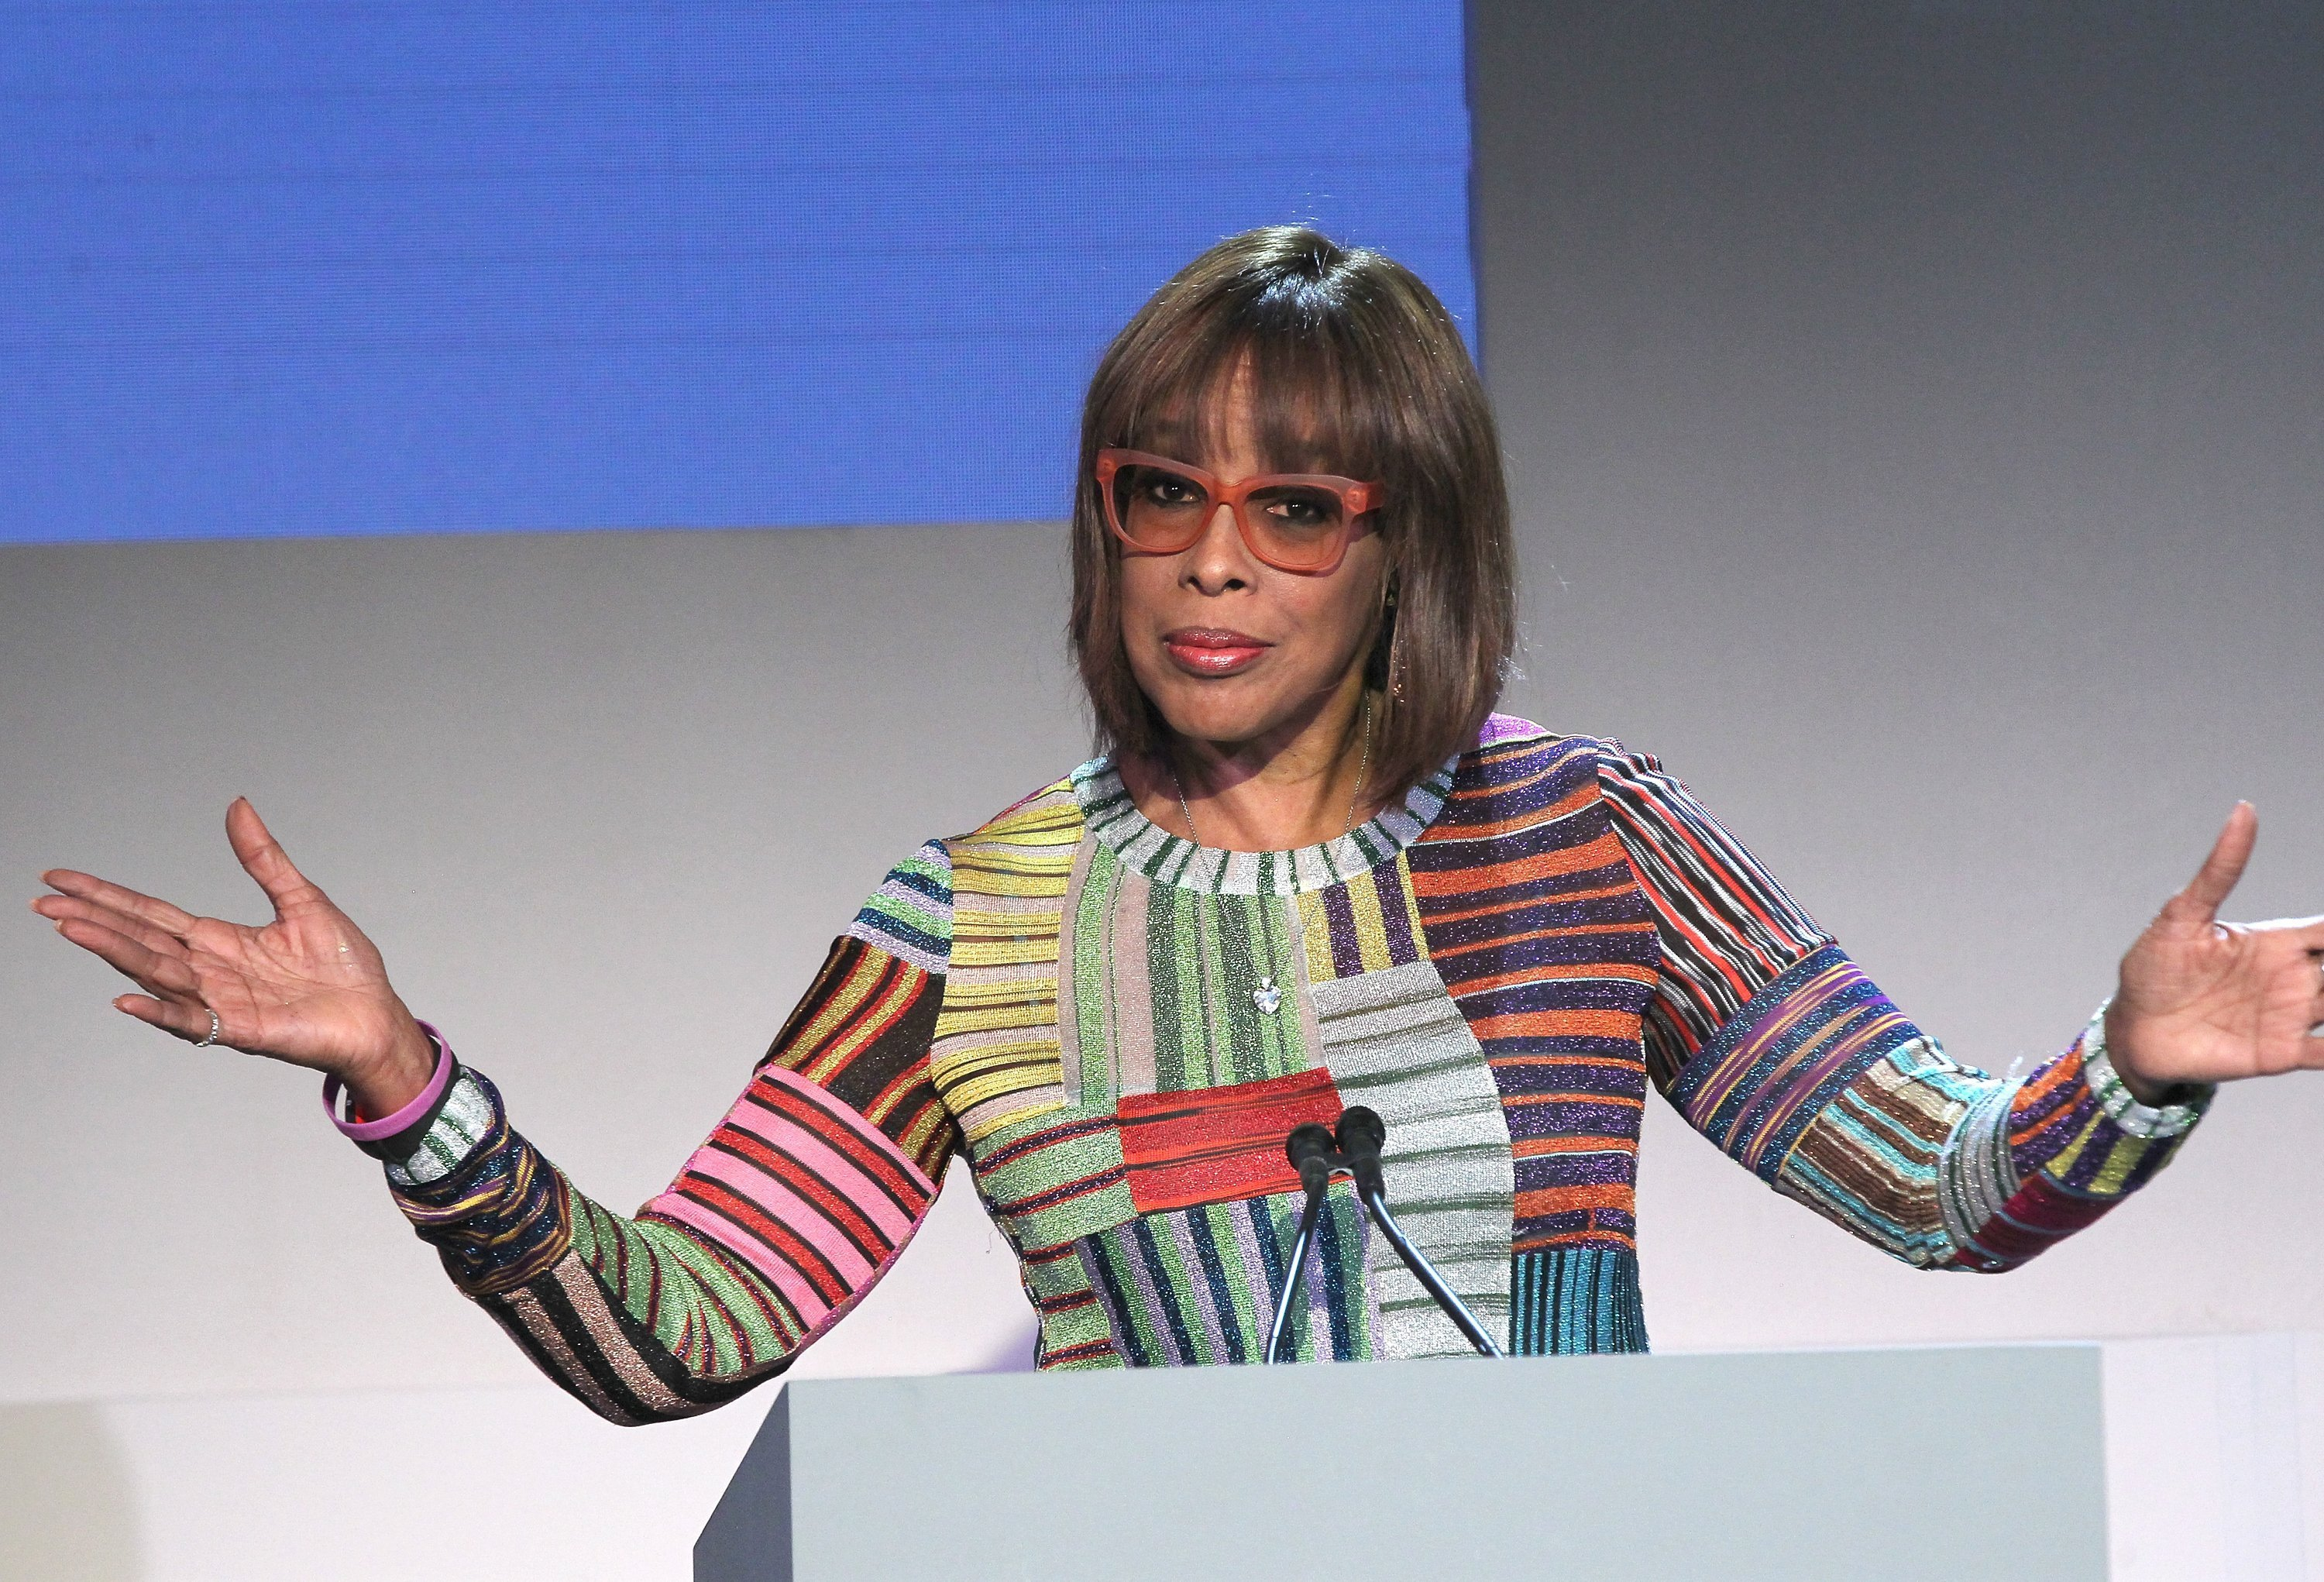 Gayle King at a speaking engagement in November 2018. | Photo: Getty Images